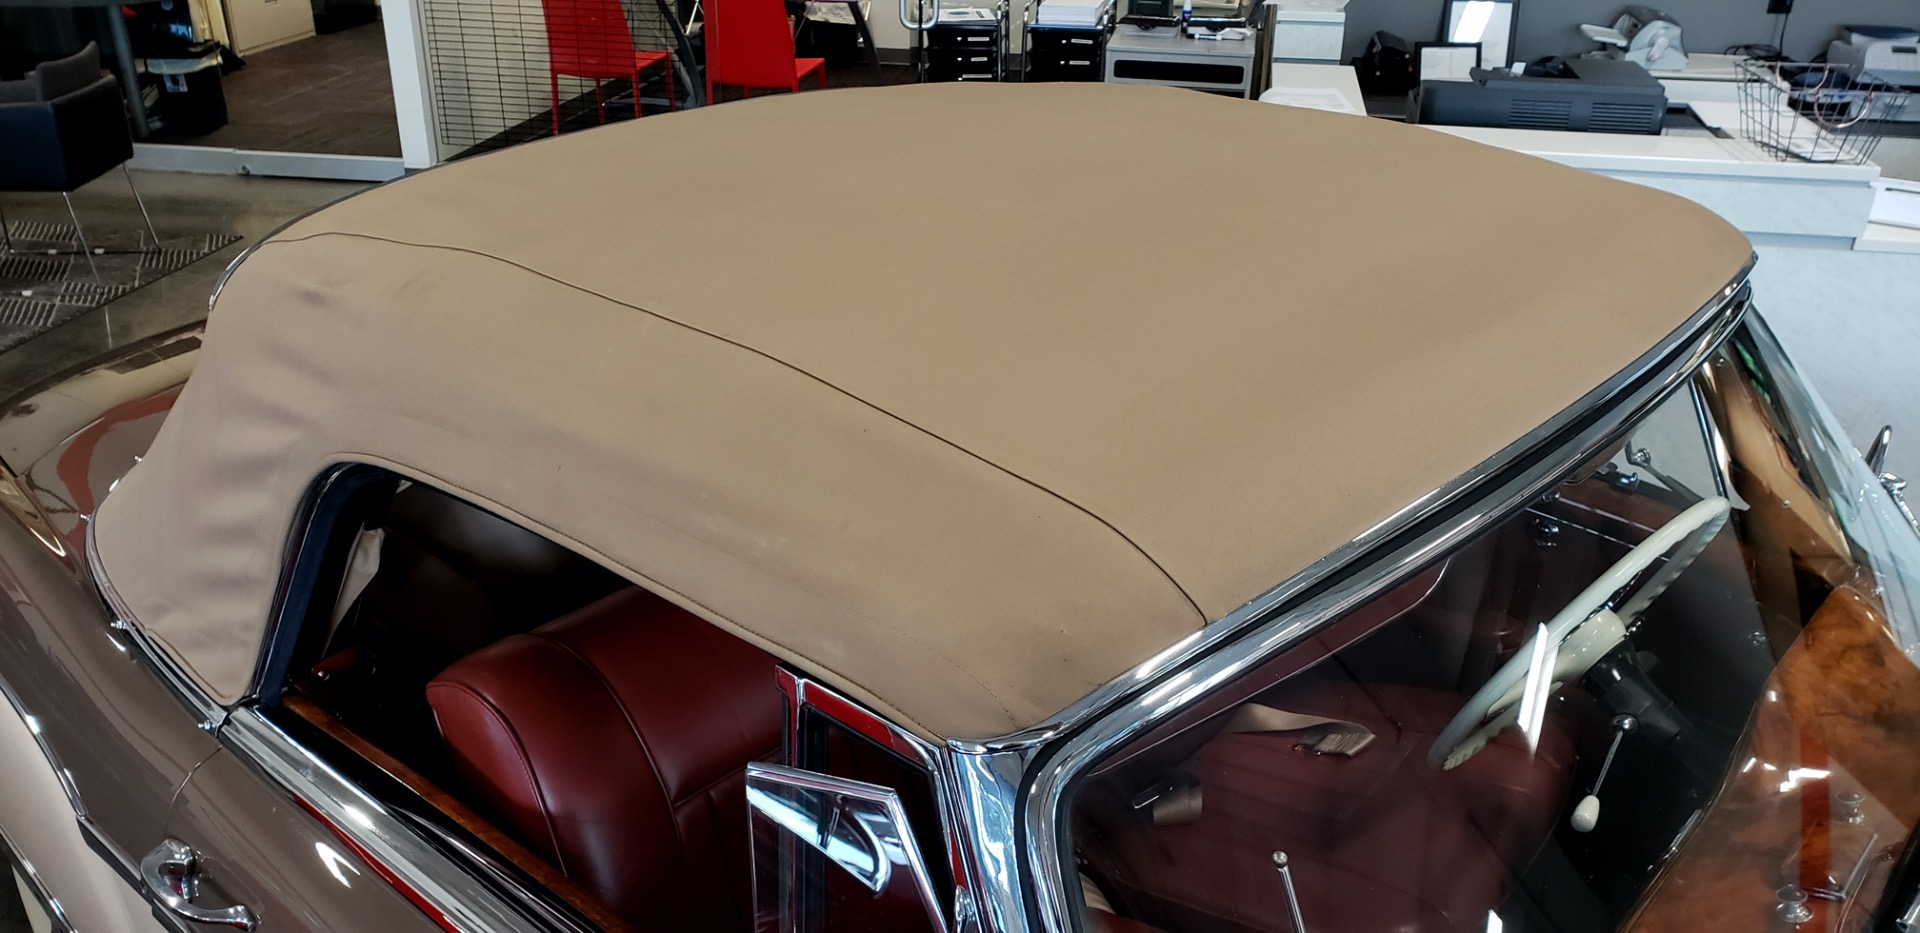 Used 1957 Mercedes-Benz 220 S Cabriolet - Full Restoration for sale Sold at Formula Imports in Charlotte NC 28227 15